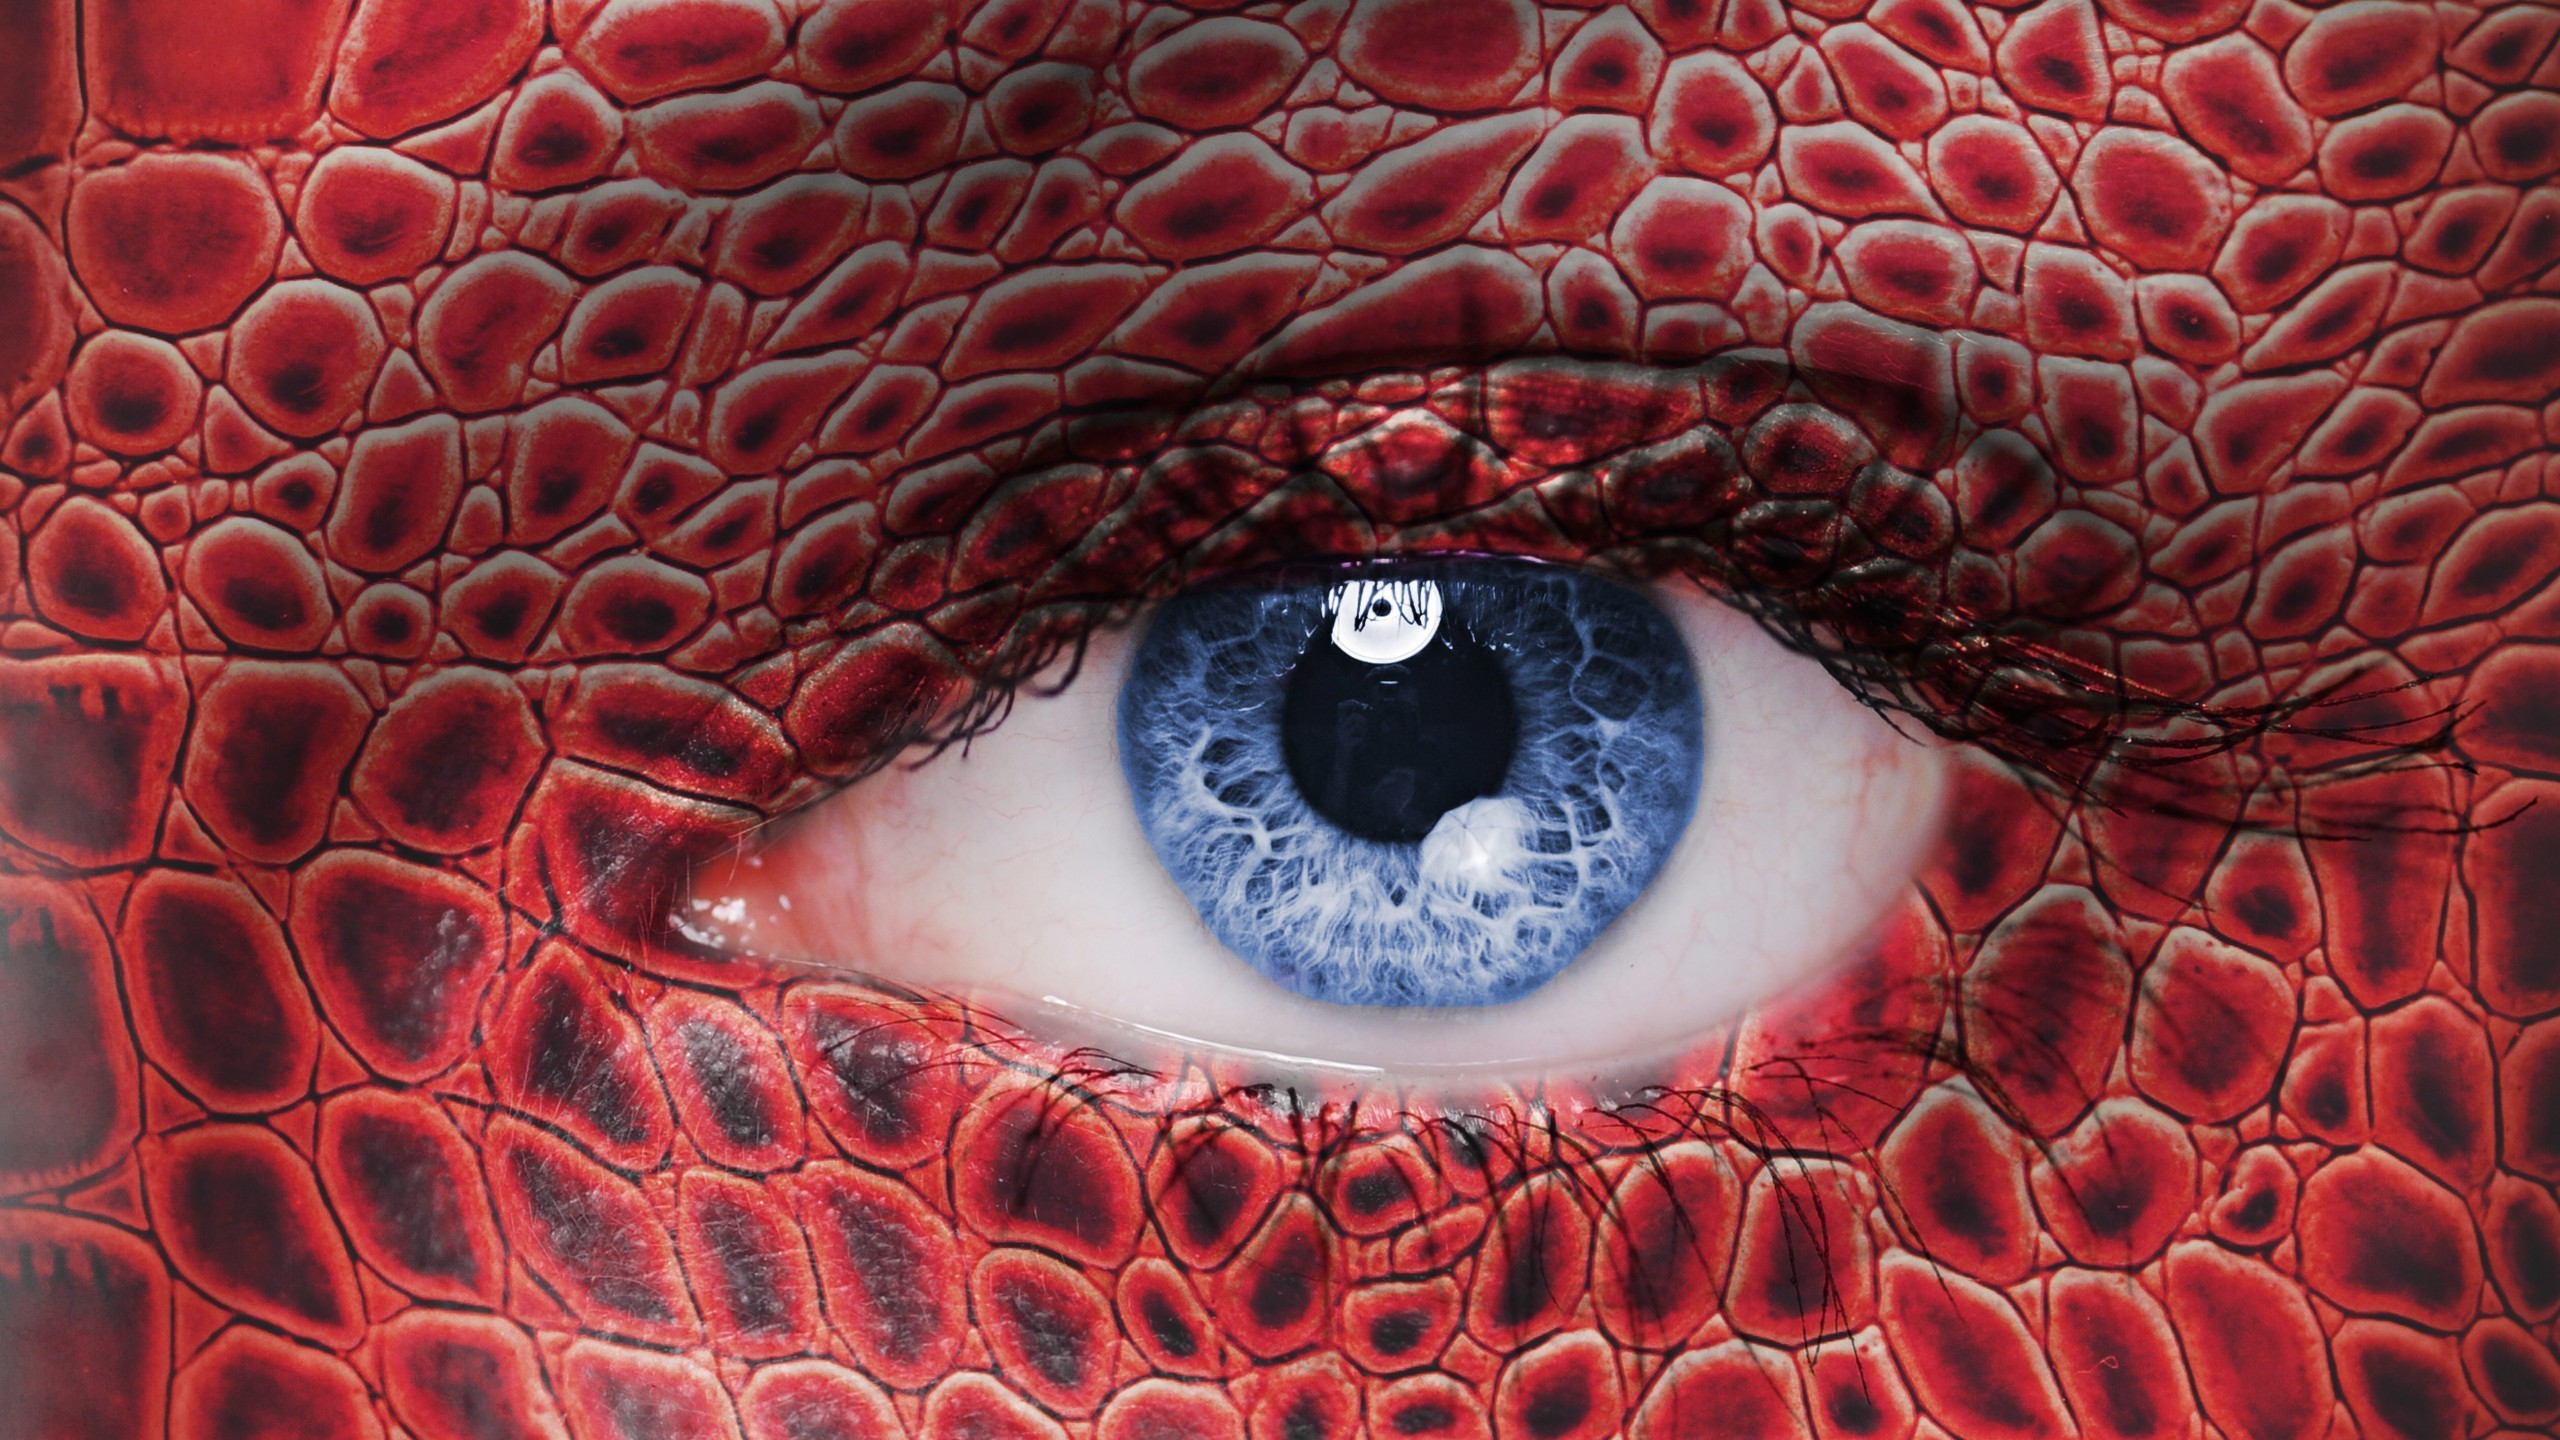 Snake Eyes Hd Wallpapers Women Eyes Looking At Viewer Blue Eyes Skin